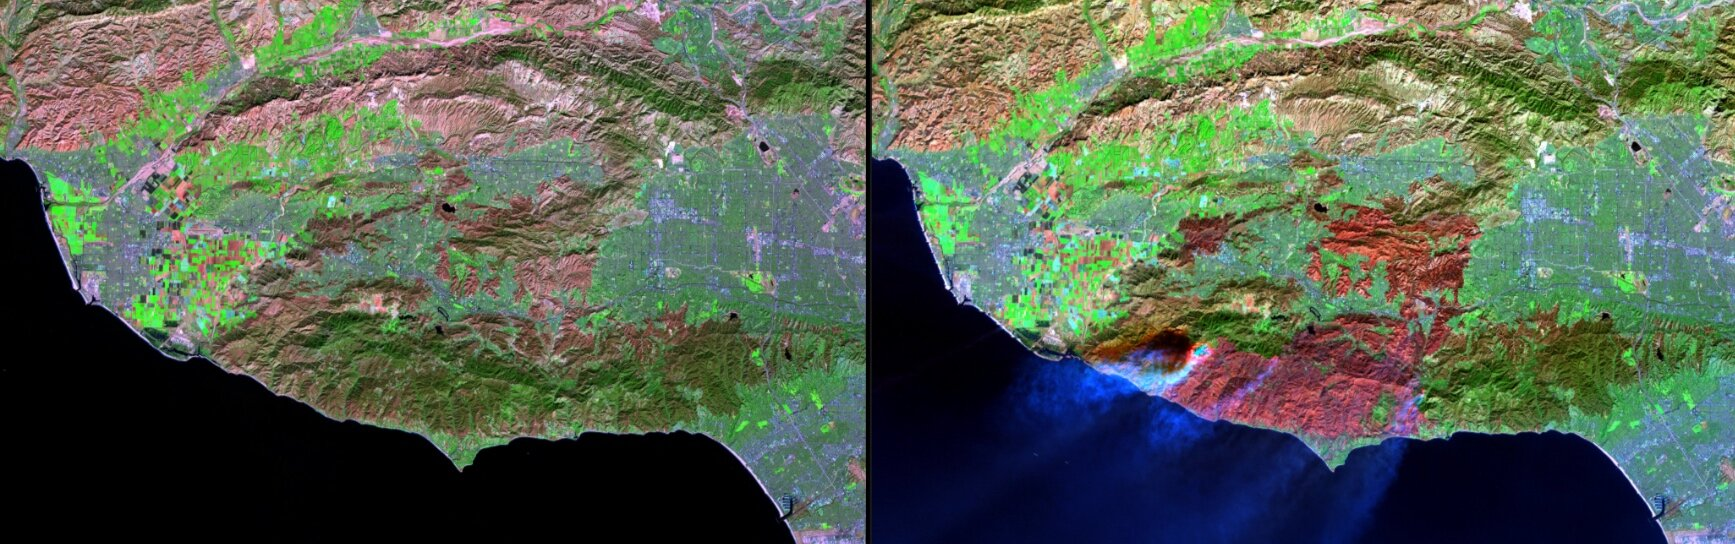 Woolsey Fire, Southern California via  Nasa  Images of Change.